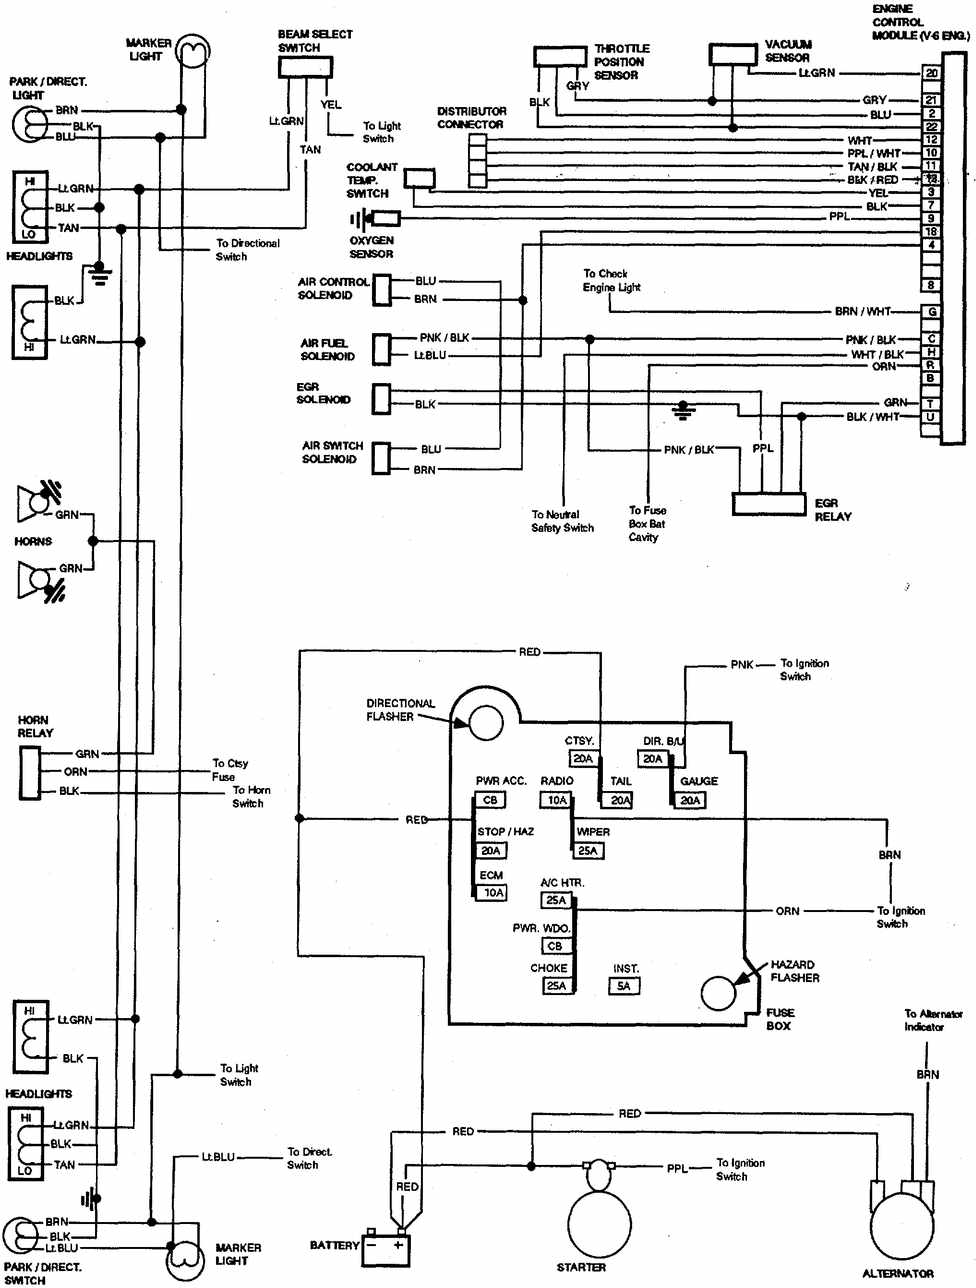 Chevrolet V8 Trucks 19811987 Electrical Wiring Diagram